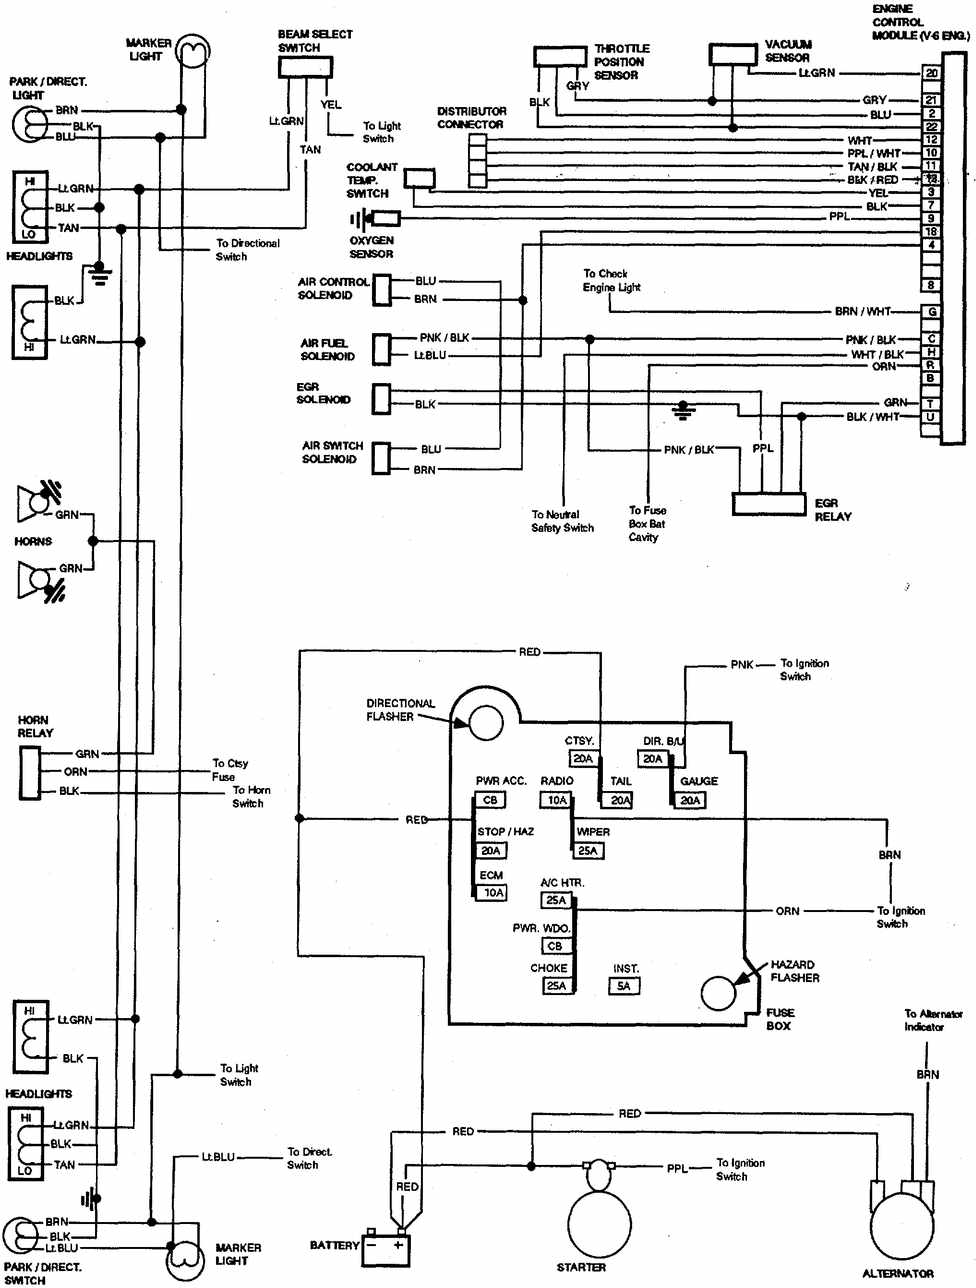 Chevrolet V8 Trucks 19811987 Electrical Wiring Diagram